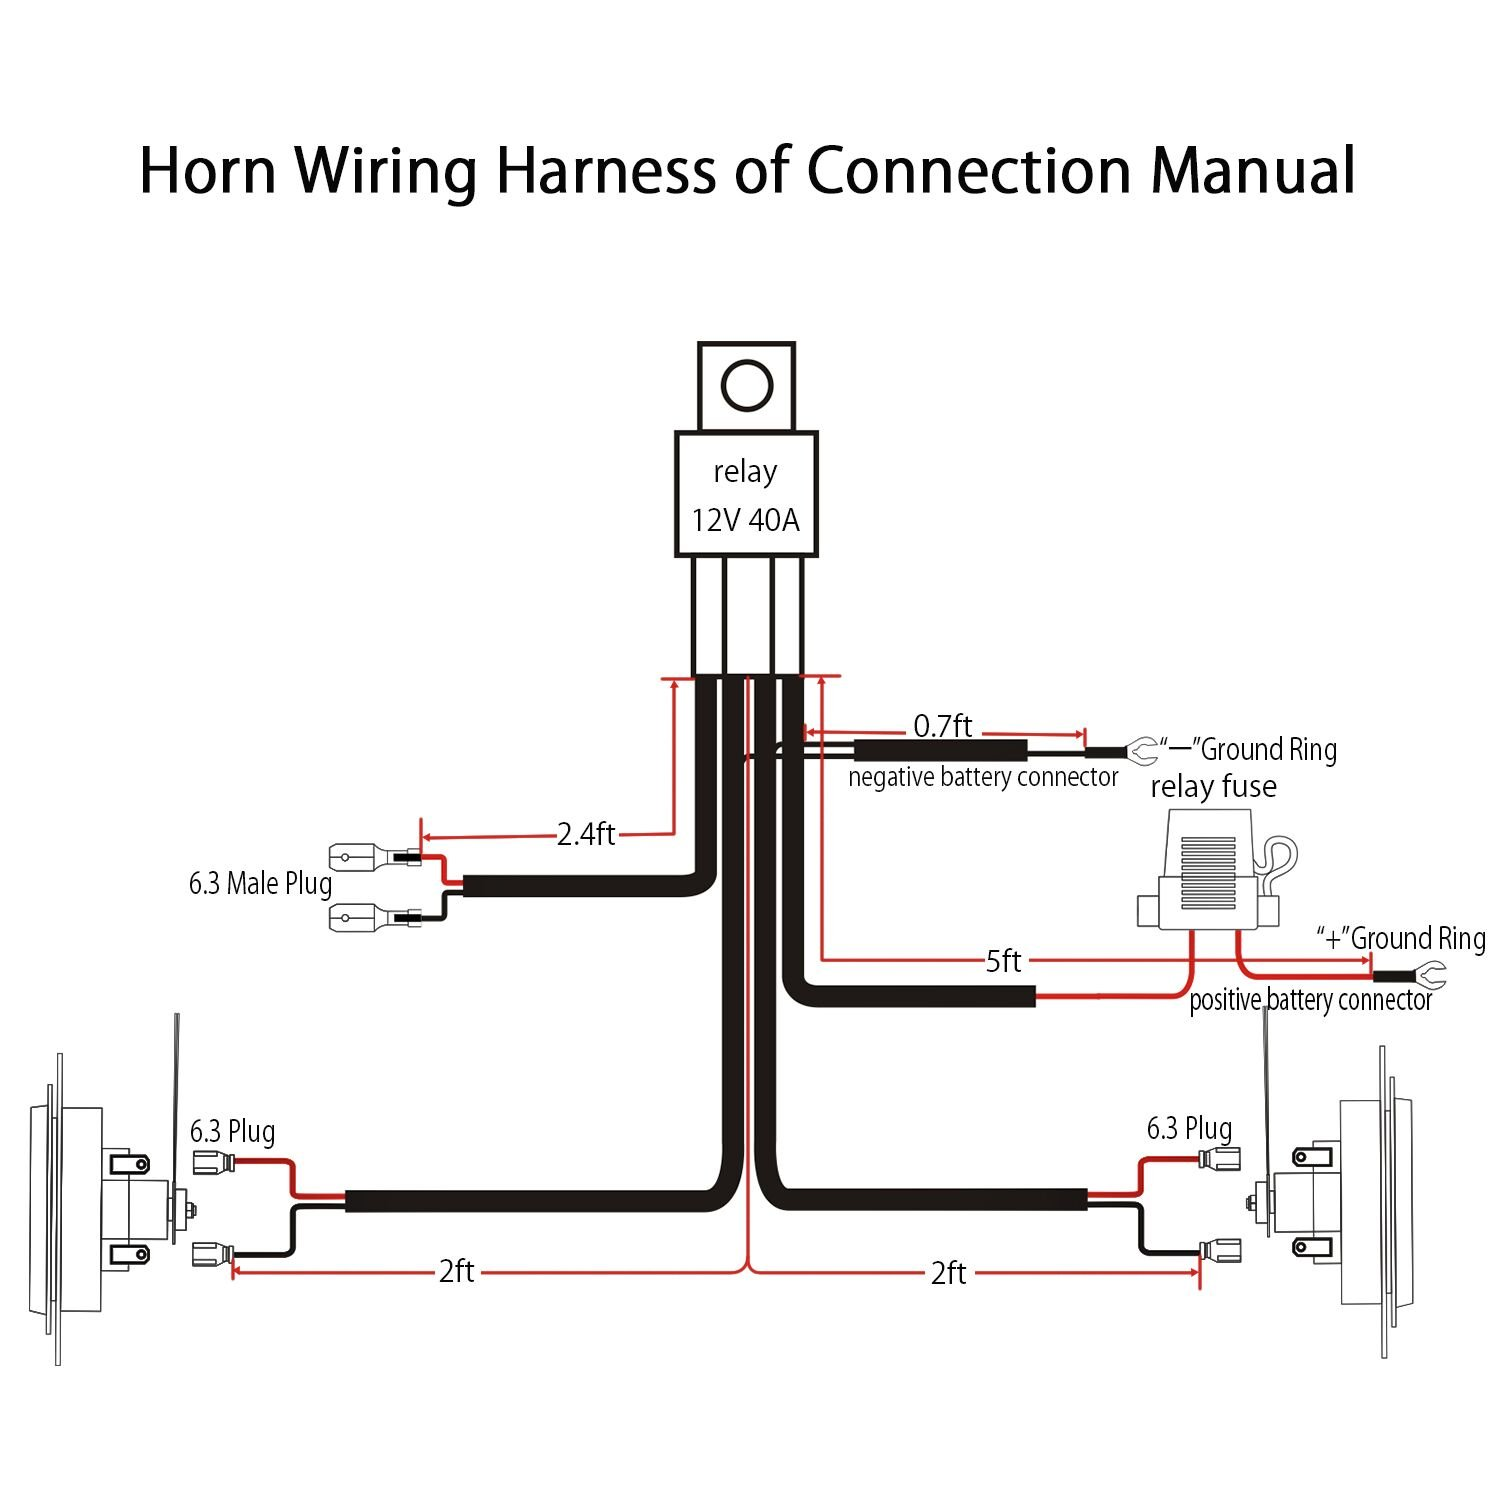 mh_2078] horn relay wiring diagram positive ground free diagram  alia caci ation over sapre ginia mohammedshrine librar wiring 101